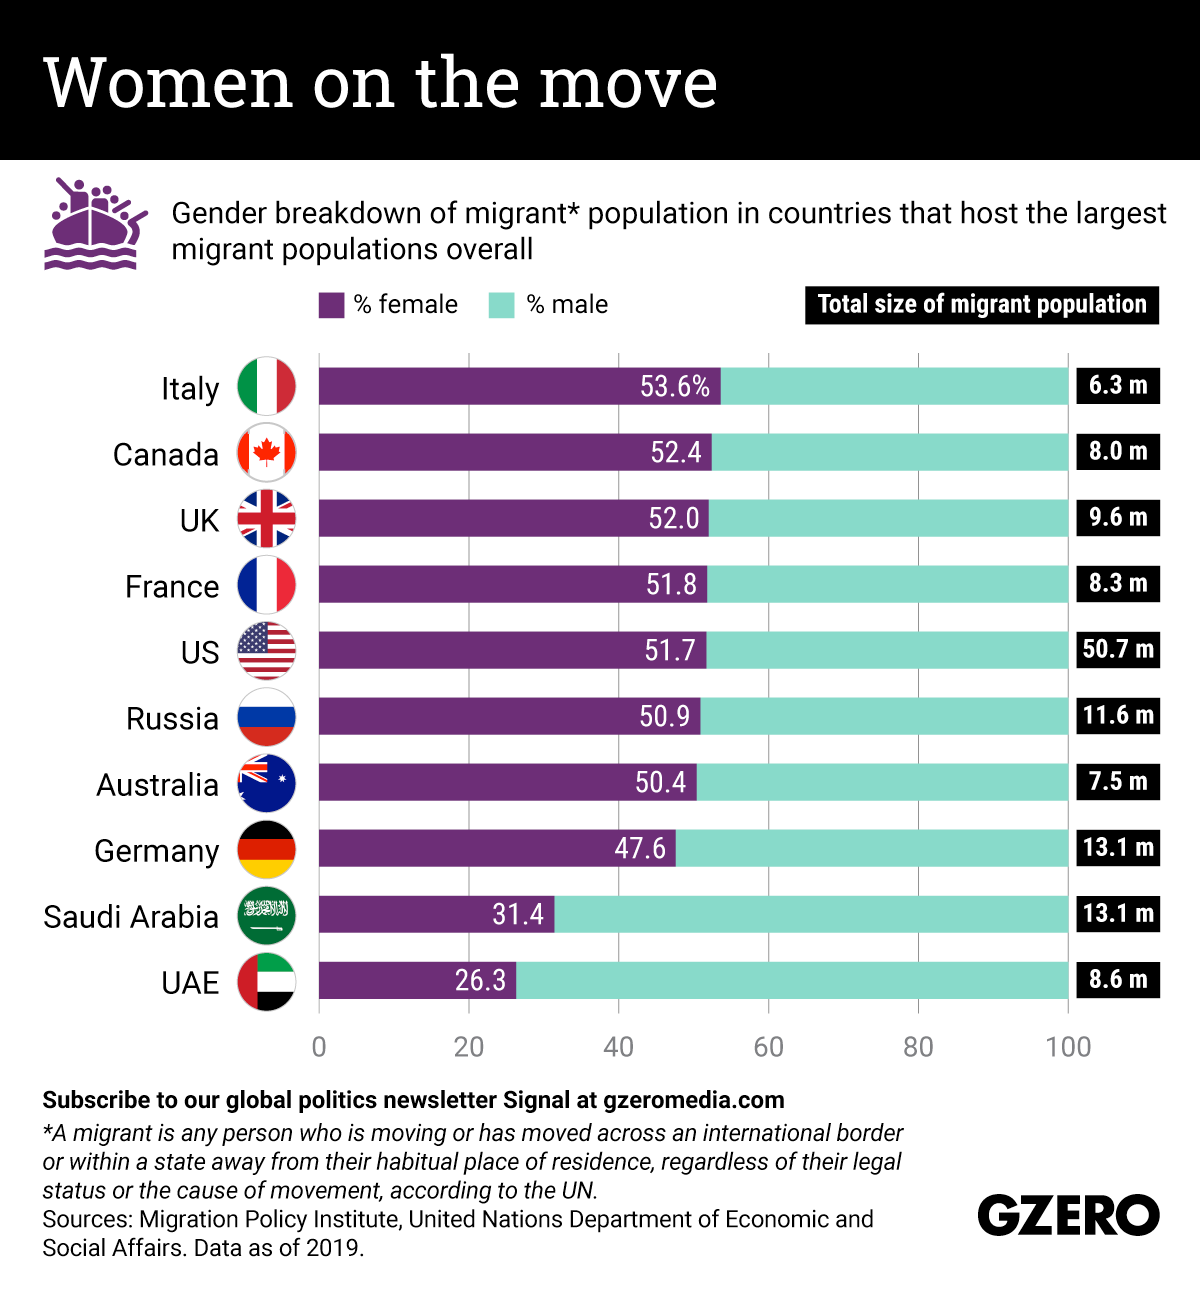 The Graphic Truth: Women on the move